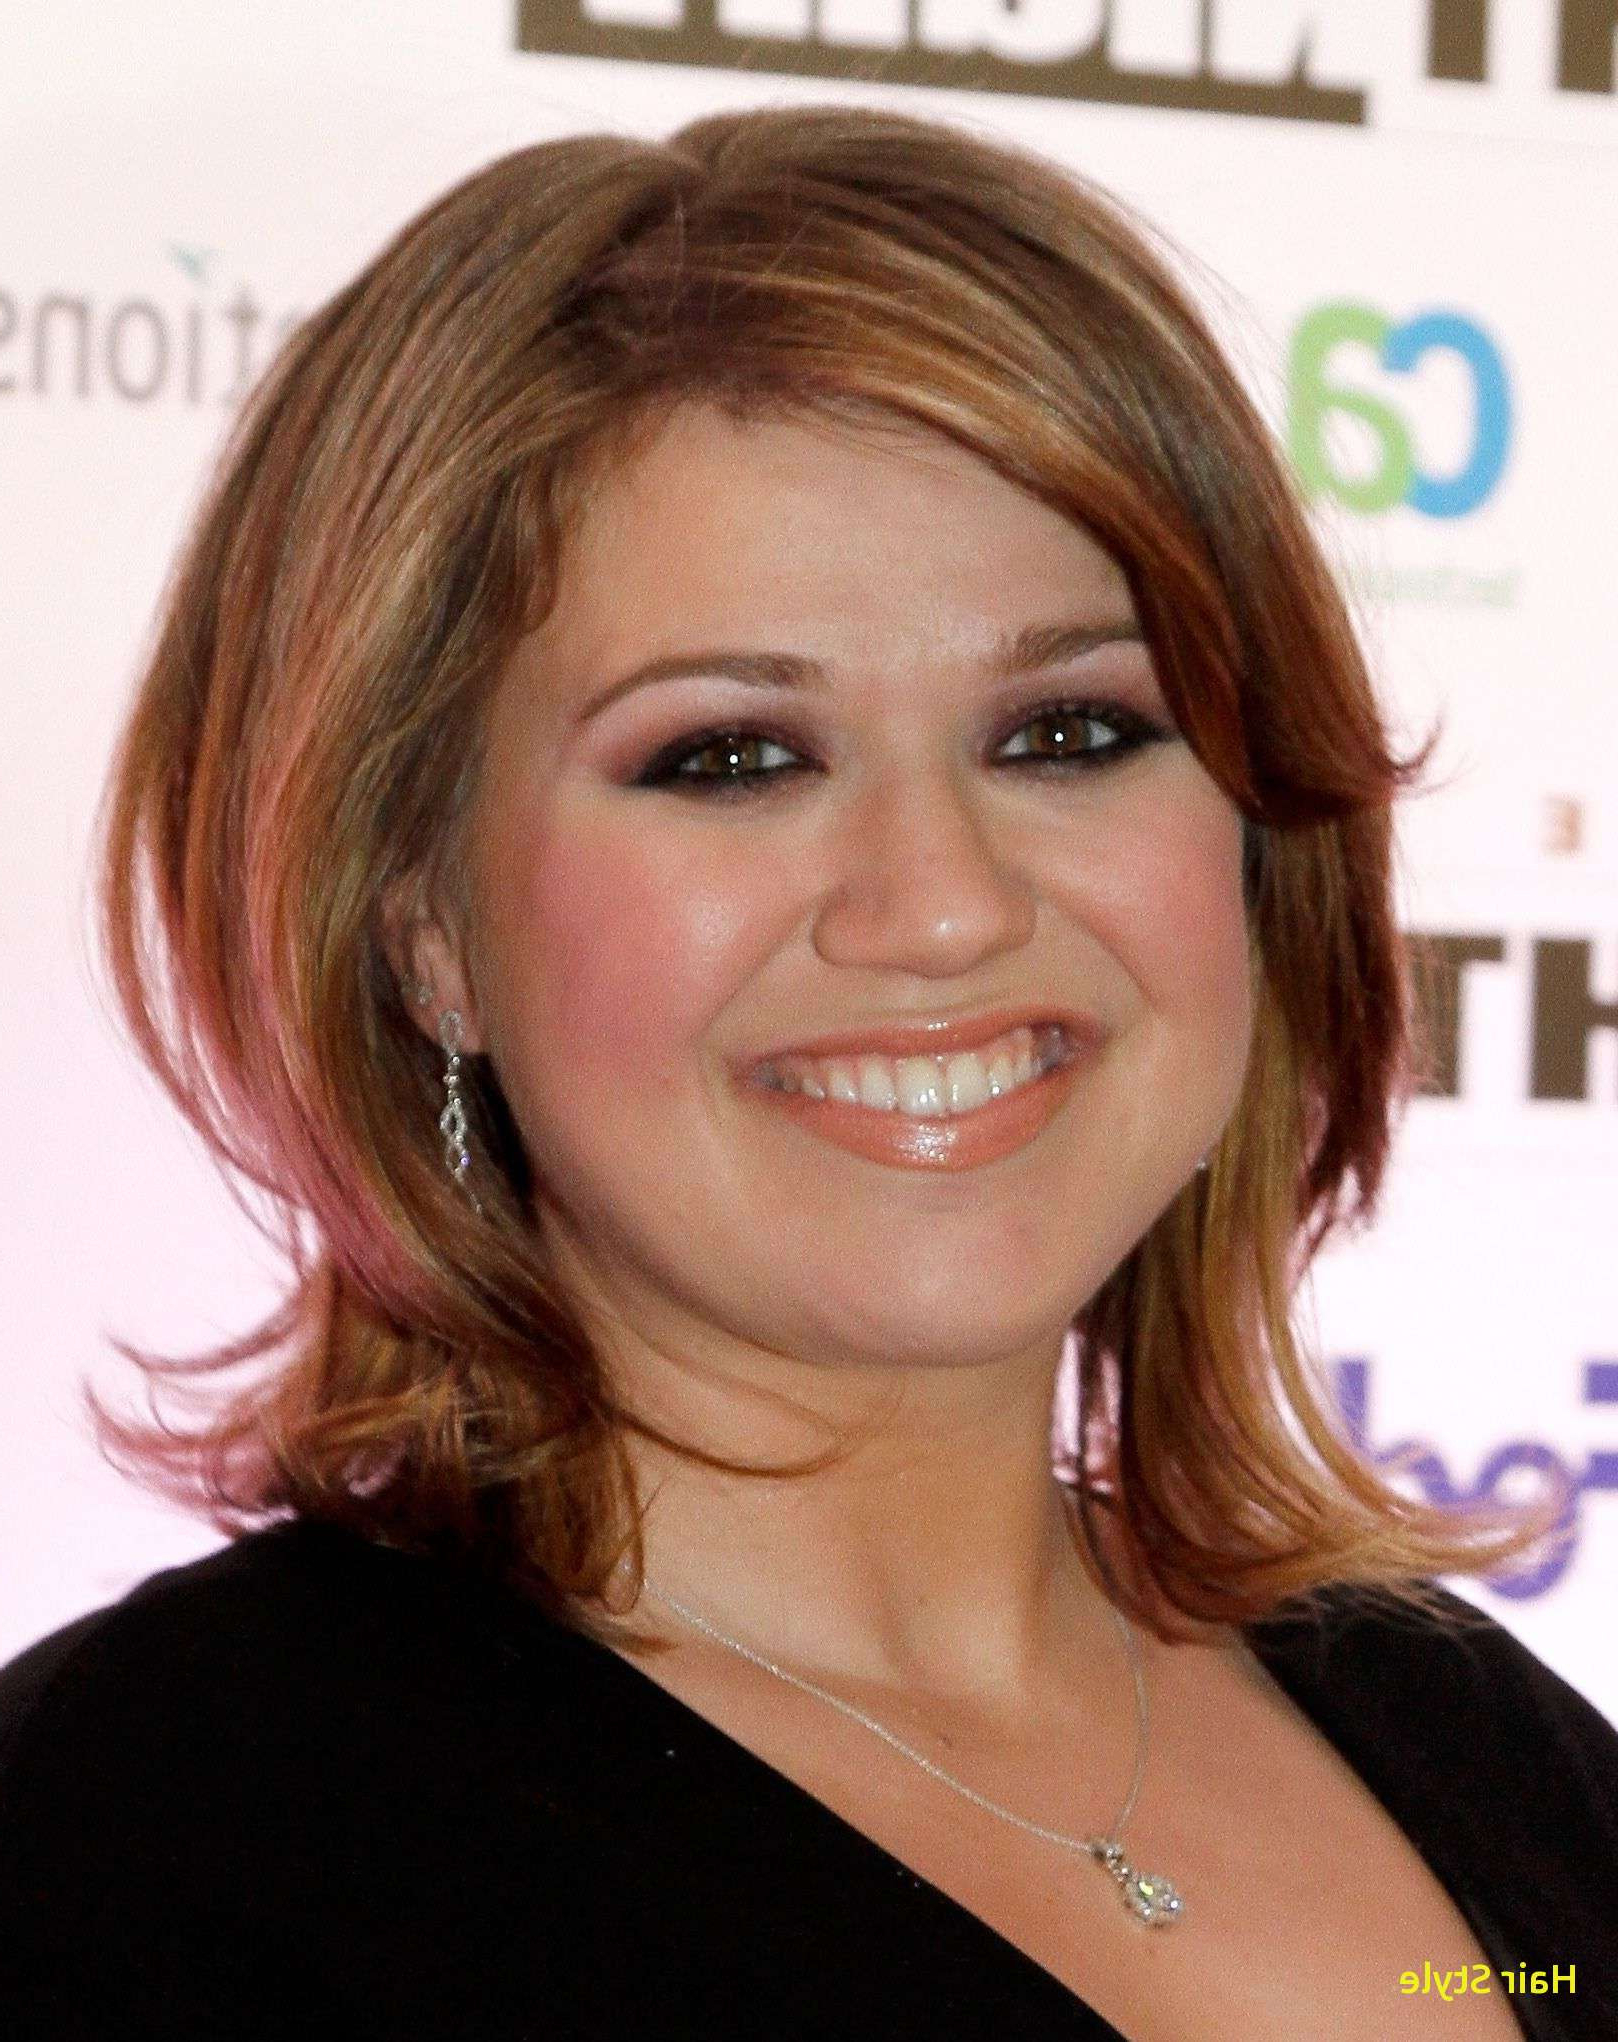 New Short Hairstyles For Round Fat Faces – Uternity Inside Short Hair For Round Chubby Face (View 13 of 25)